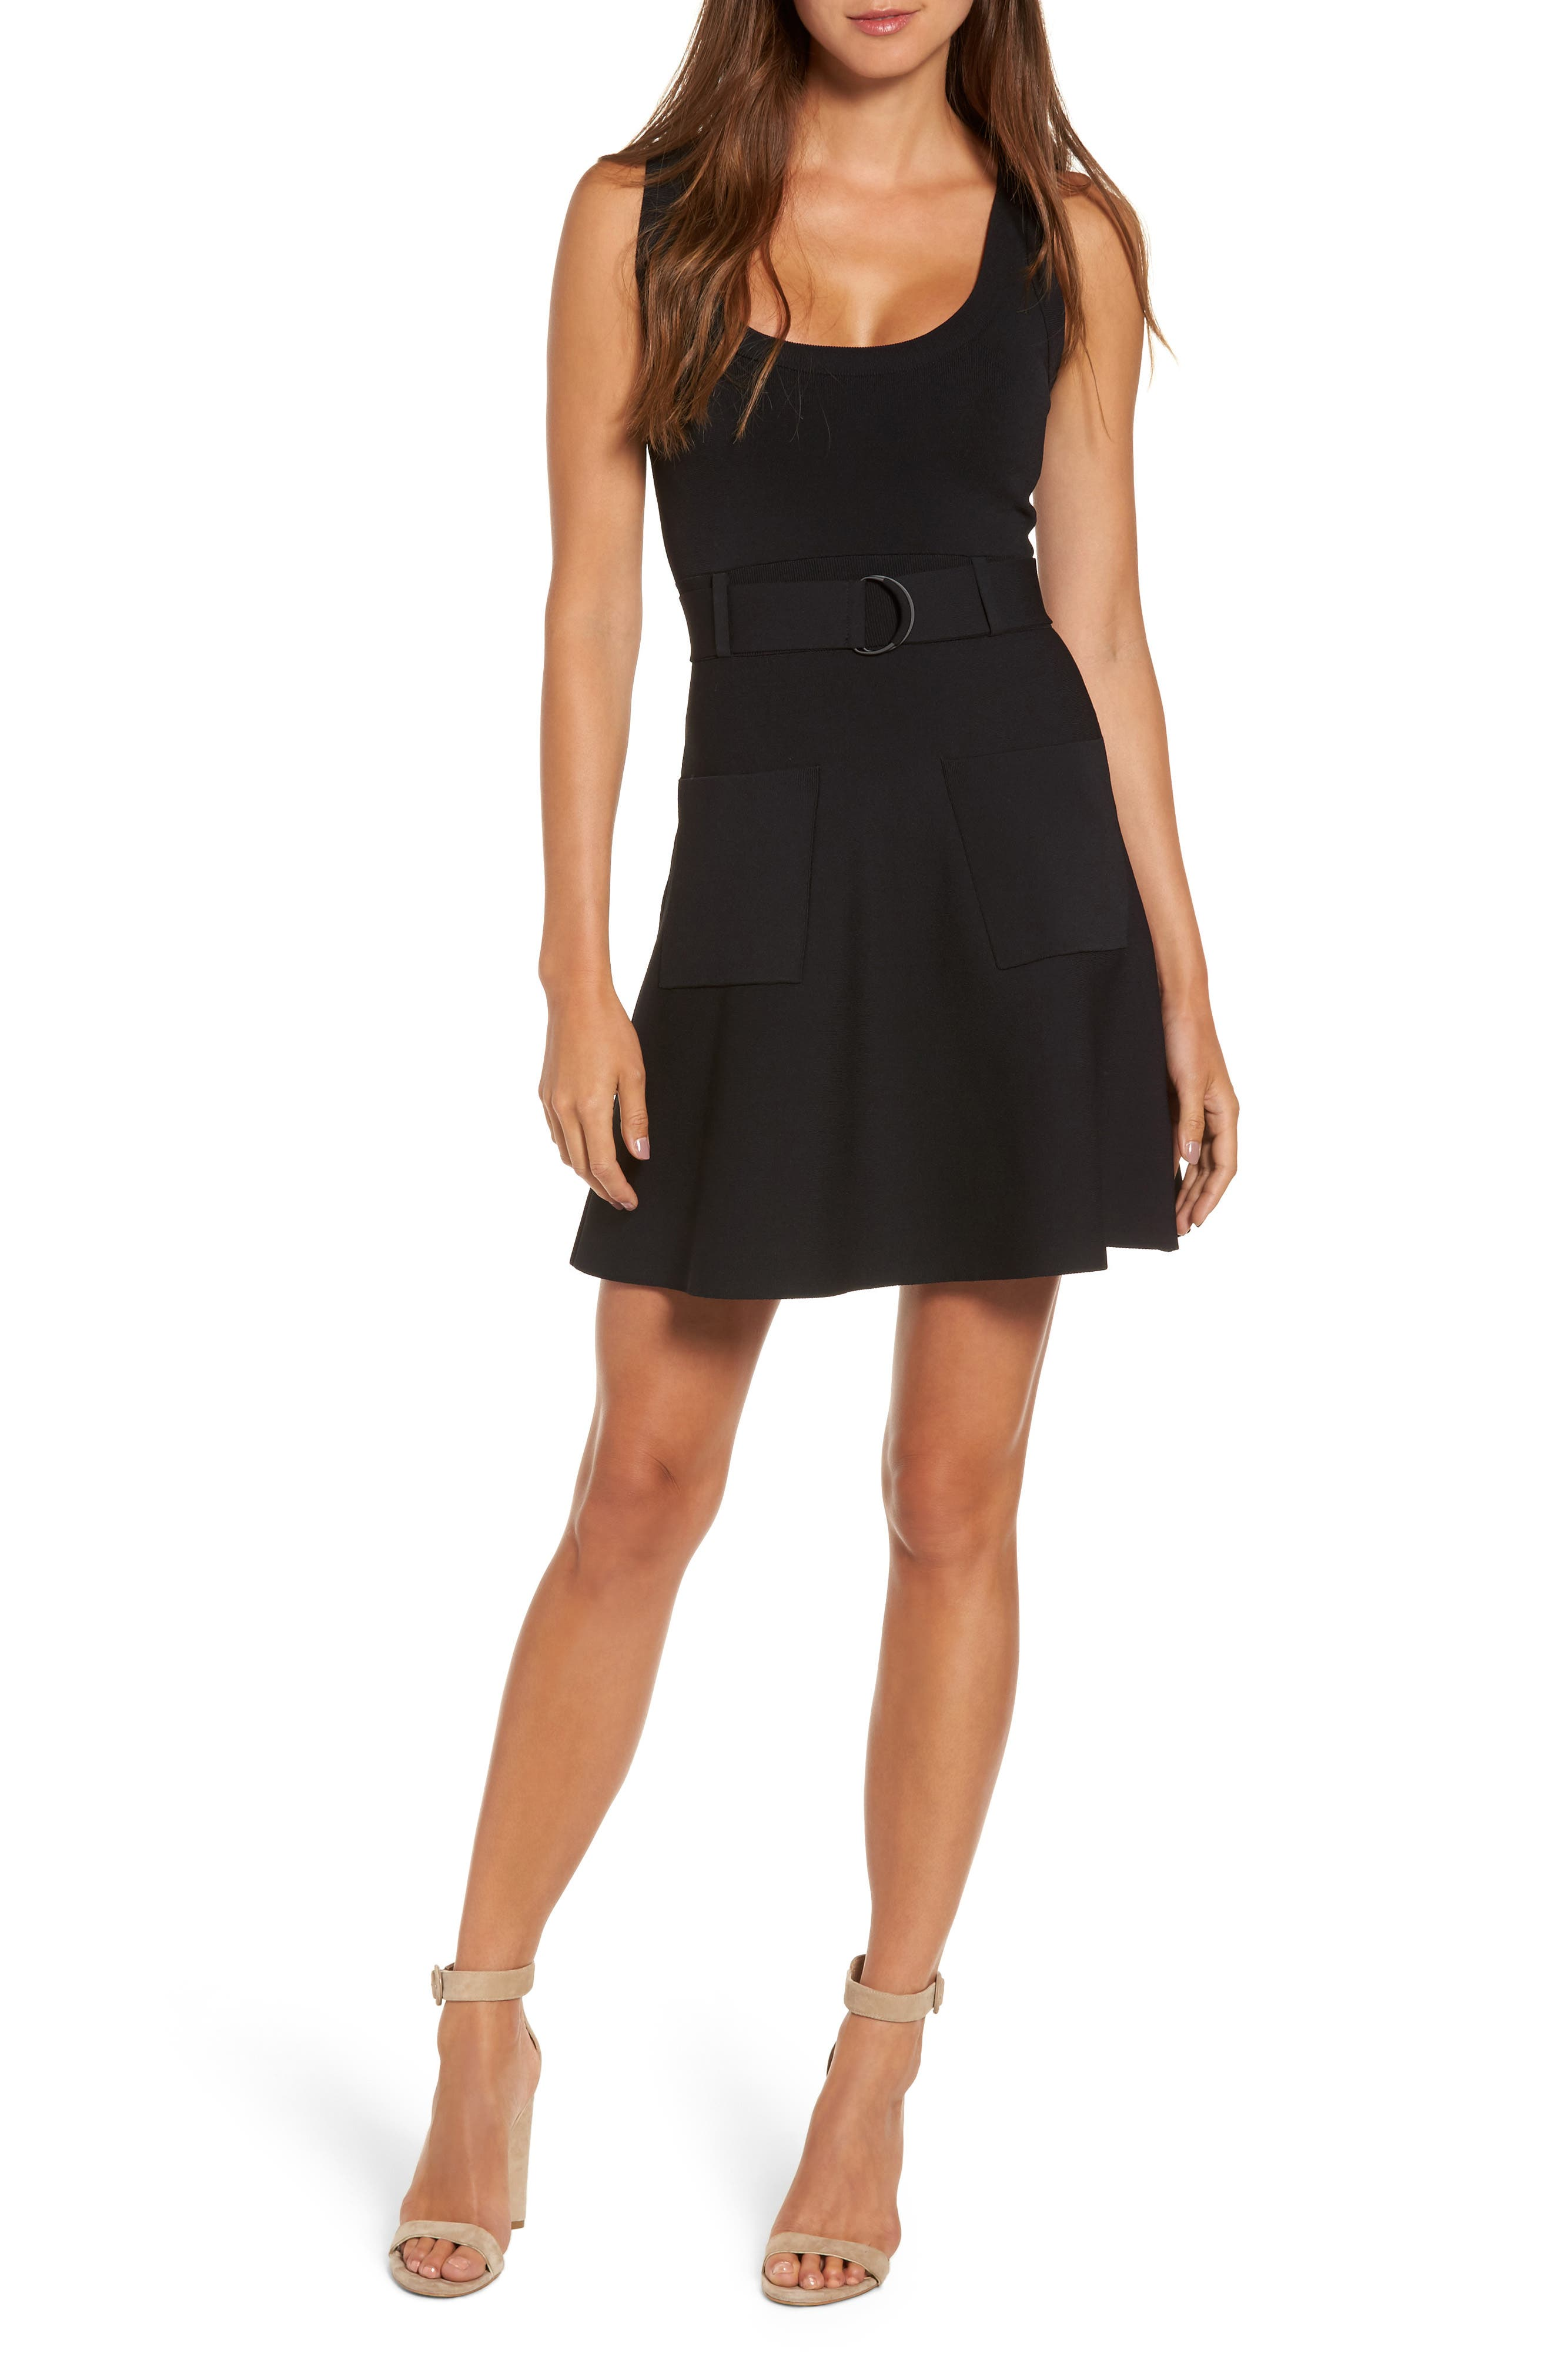 Main Image - KENDALL + KYLIE Sleeveless Fit & Flare Dress